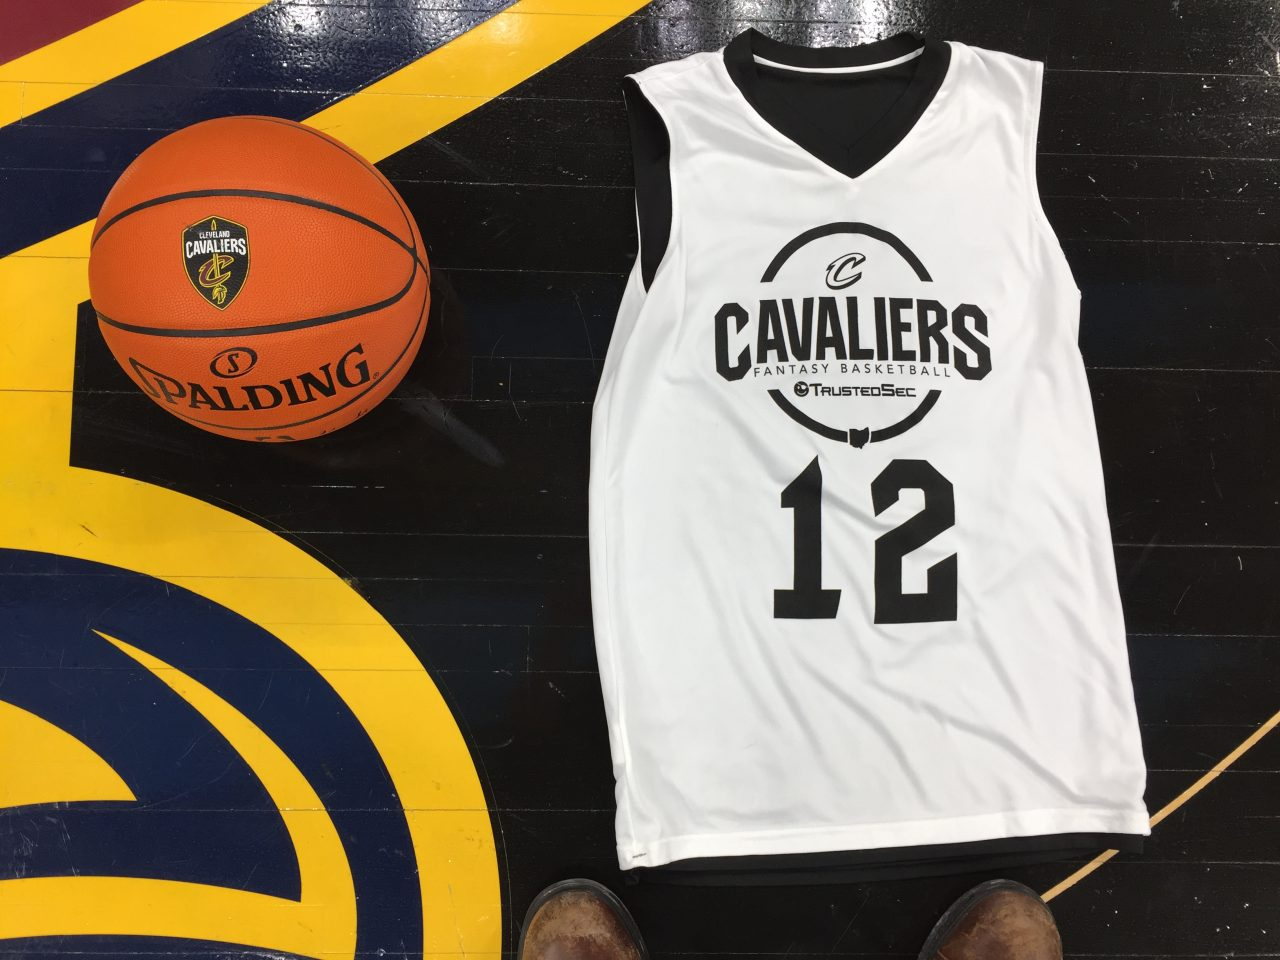 Cleveland Cavaliers and TrustedSec fantasy basketball jersey and basketball